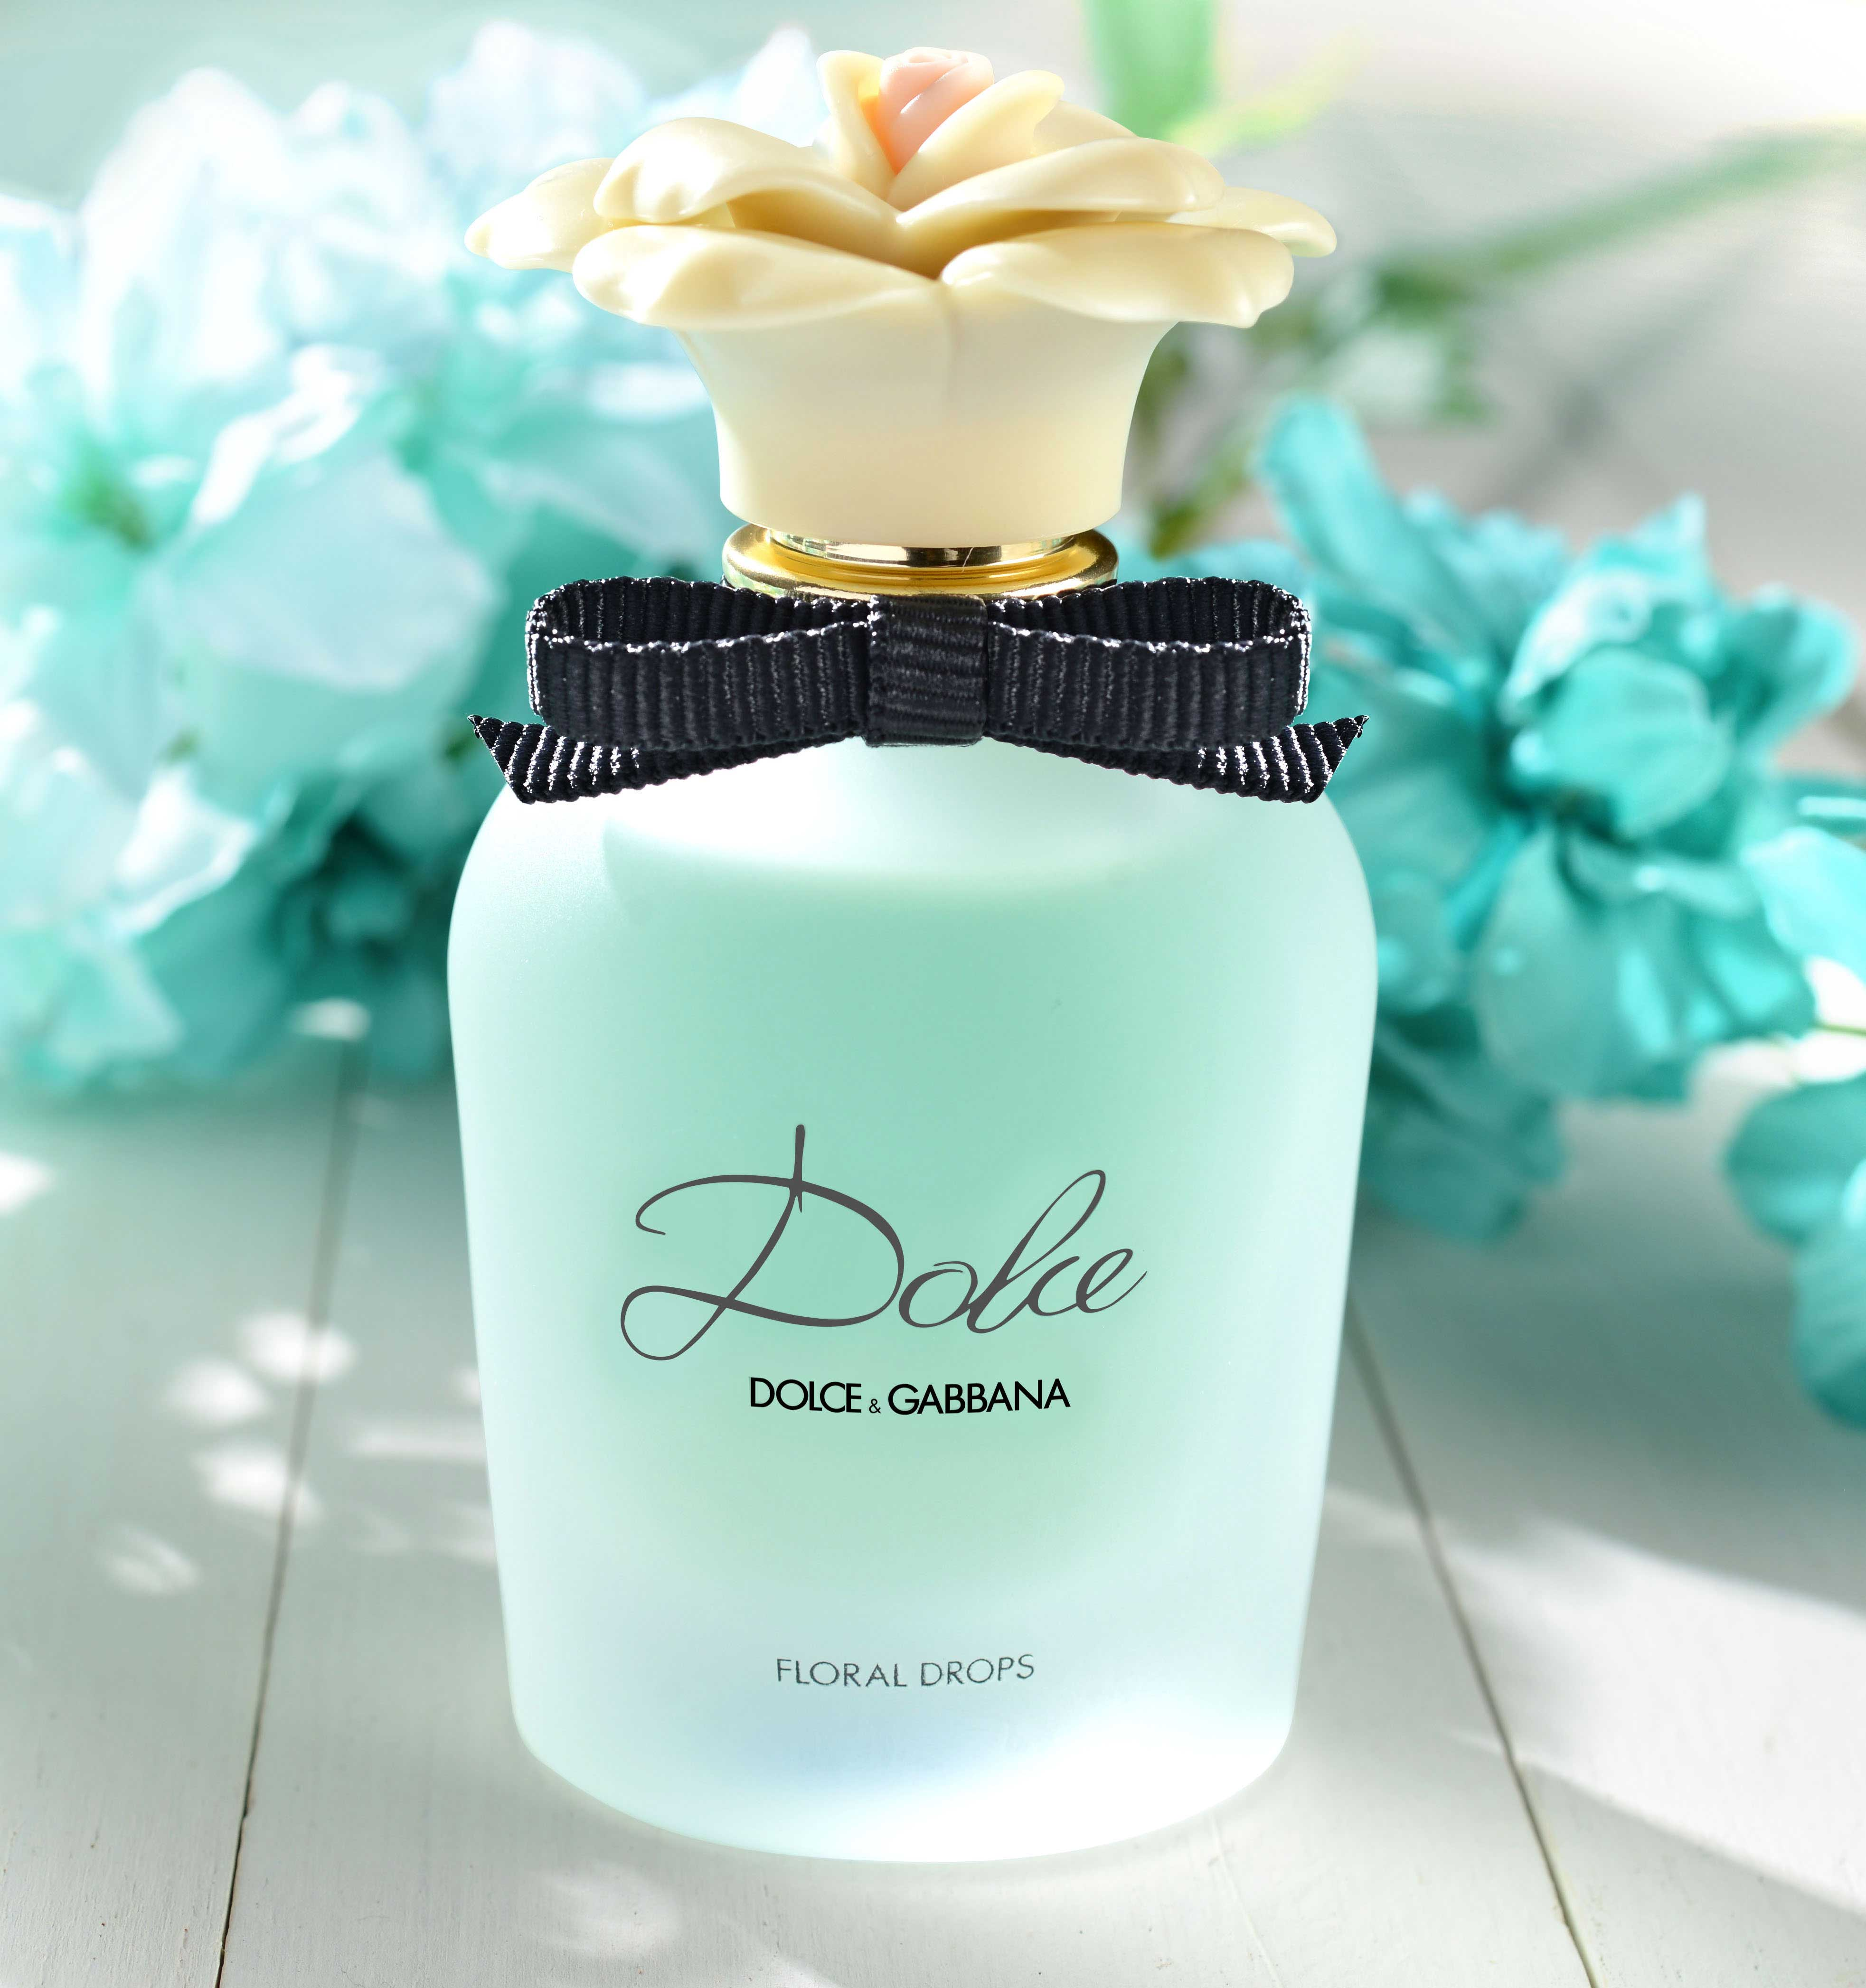 mike wepplo photoreal photography Dolce perfume bottle with flowers